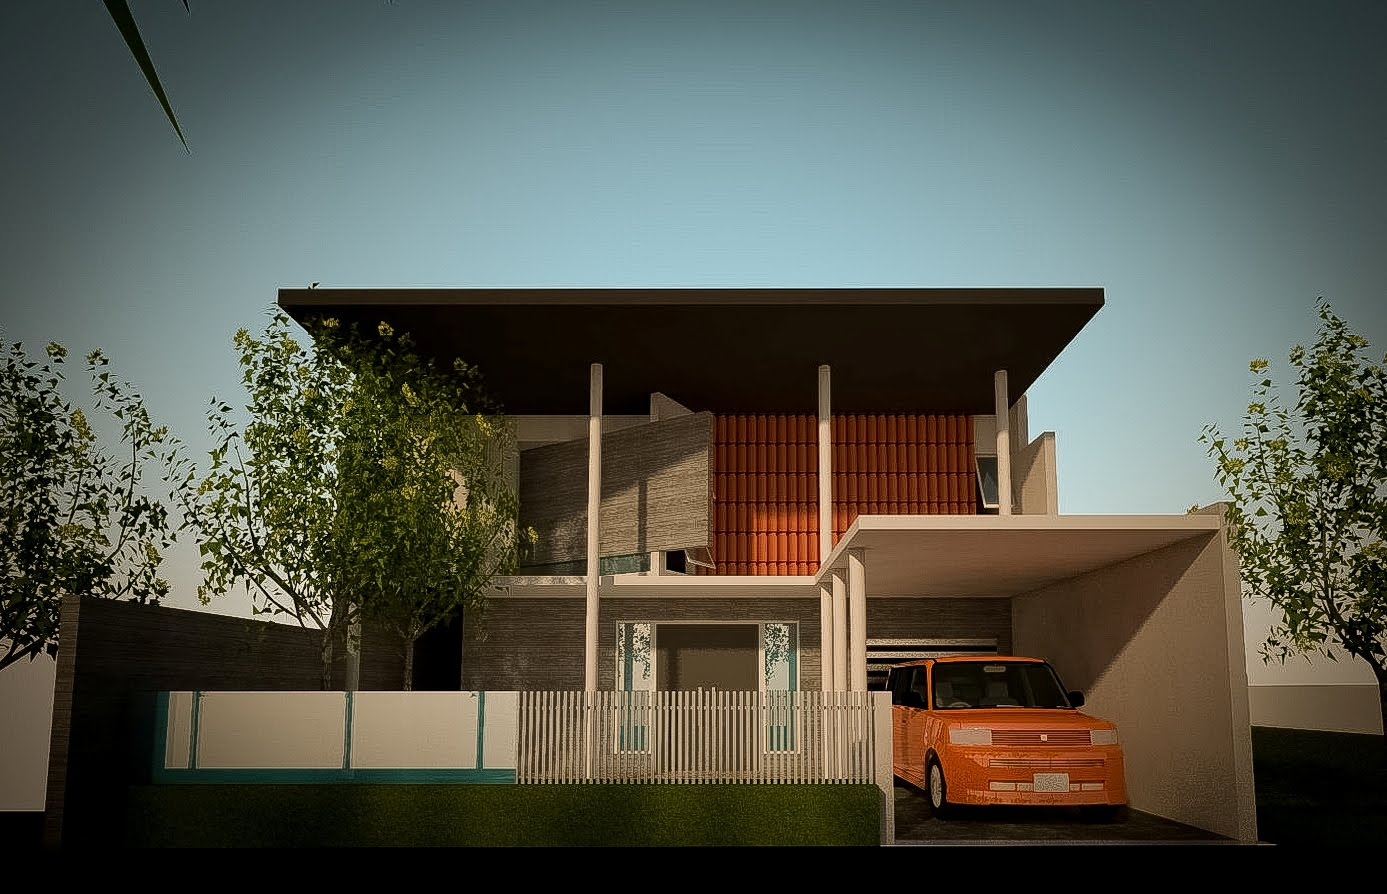 Cawah homes minimalist and modern house design for a muslim for Becoming minimalist home